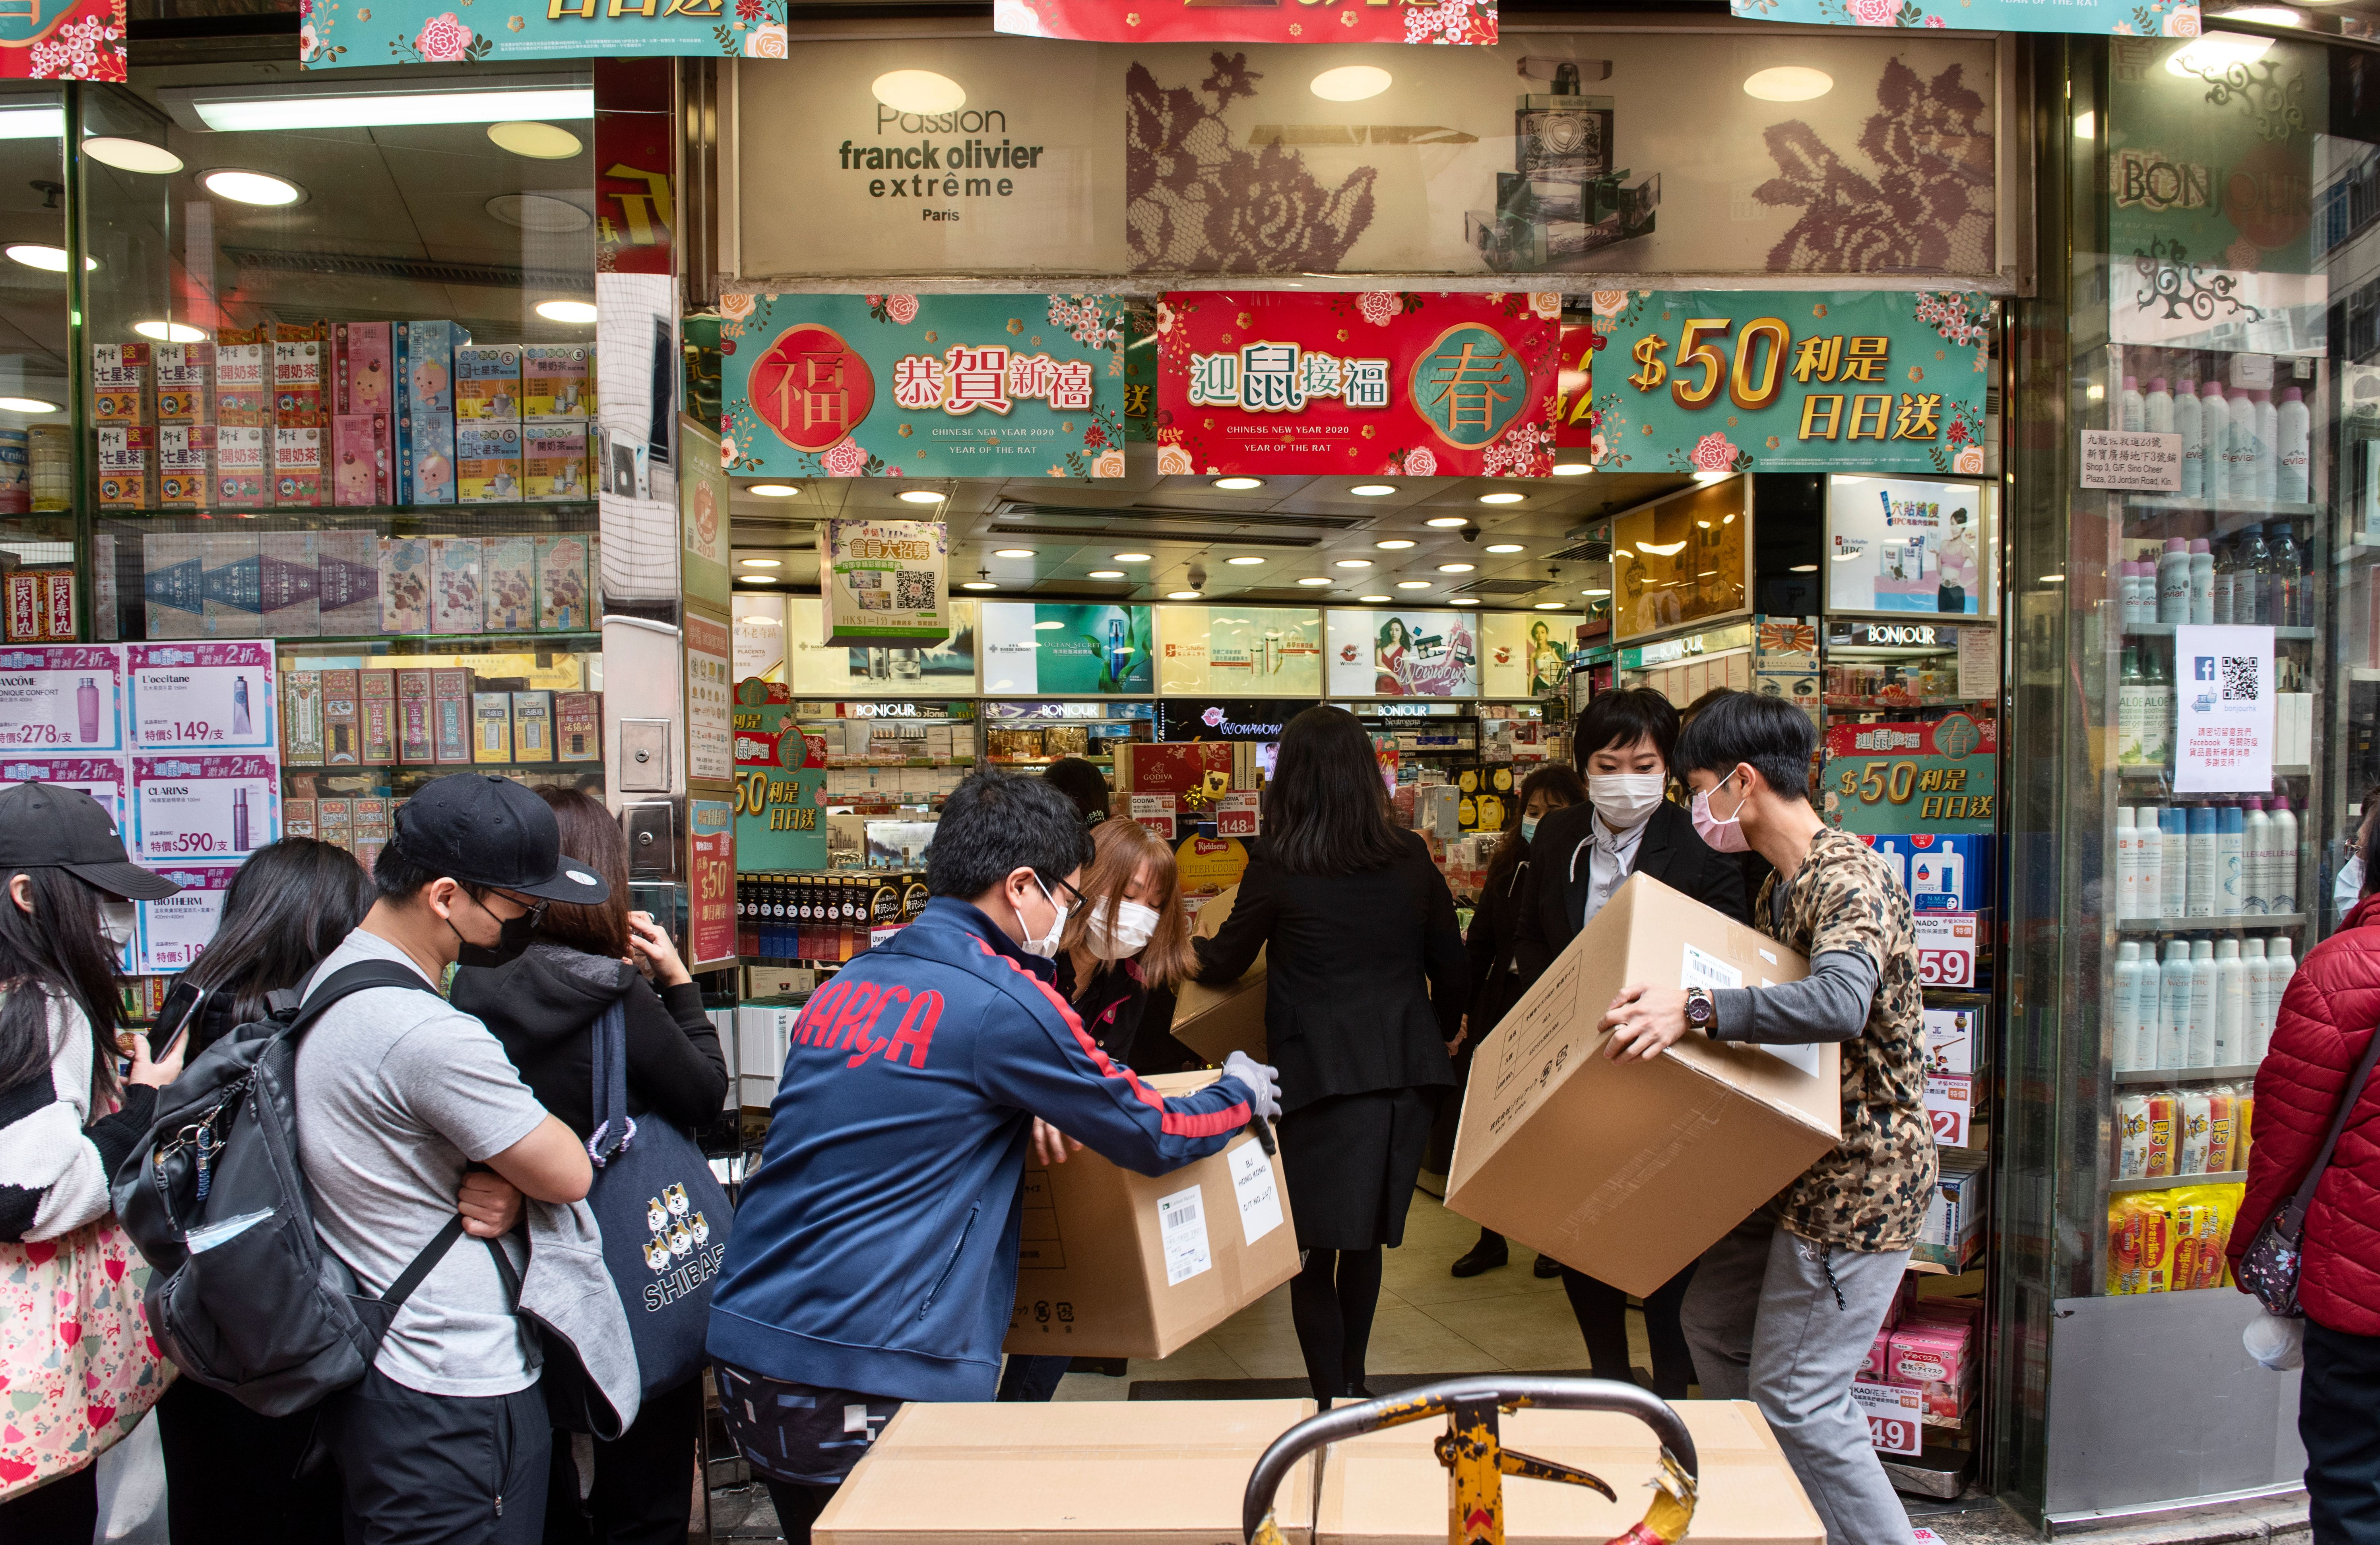 Employees at a cosmetic shop receive 460 boxes of face mask stock while customers wait in a line in Hong Kong.